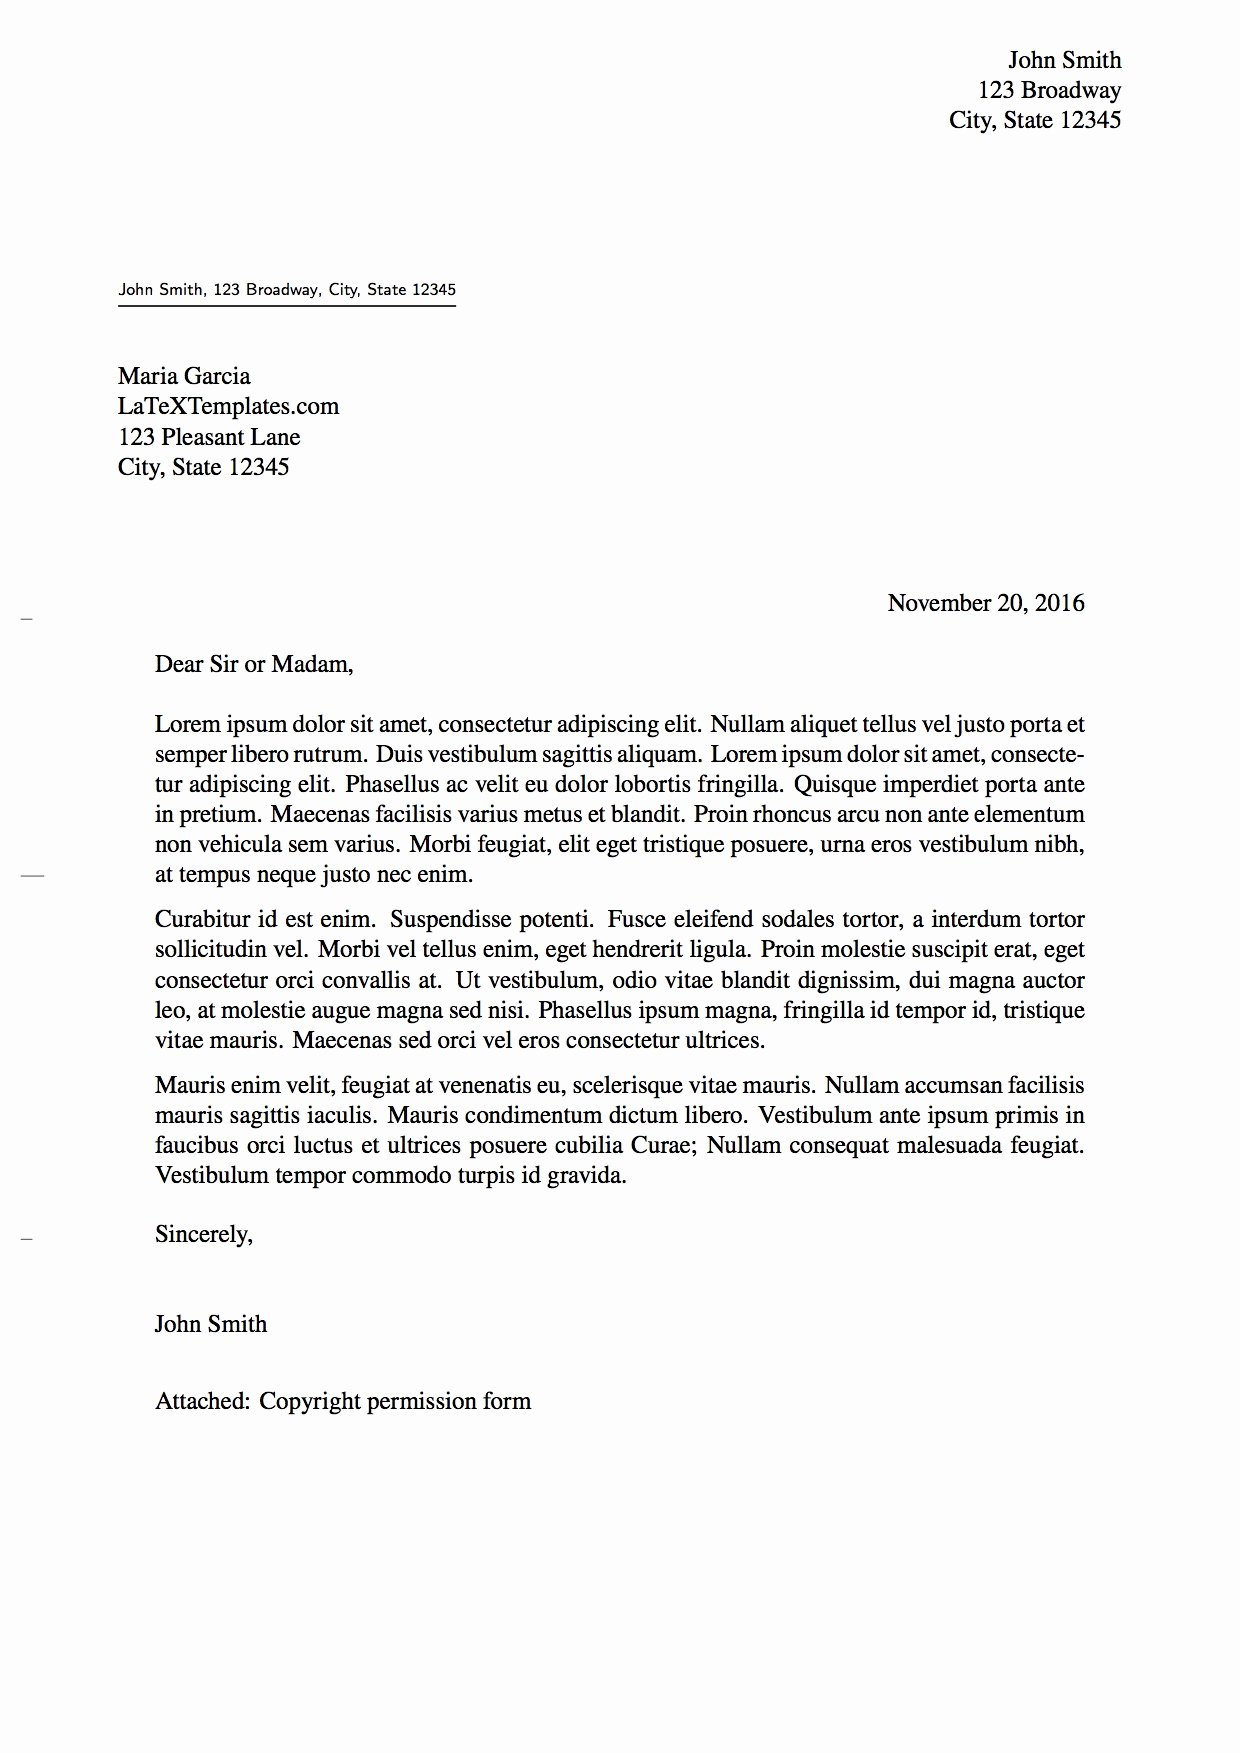 Latex Cover Letter Templates Fresh Latex Templates formal Letters